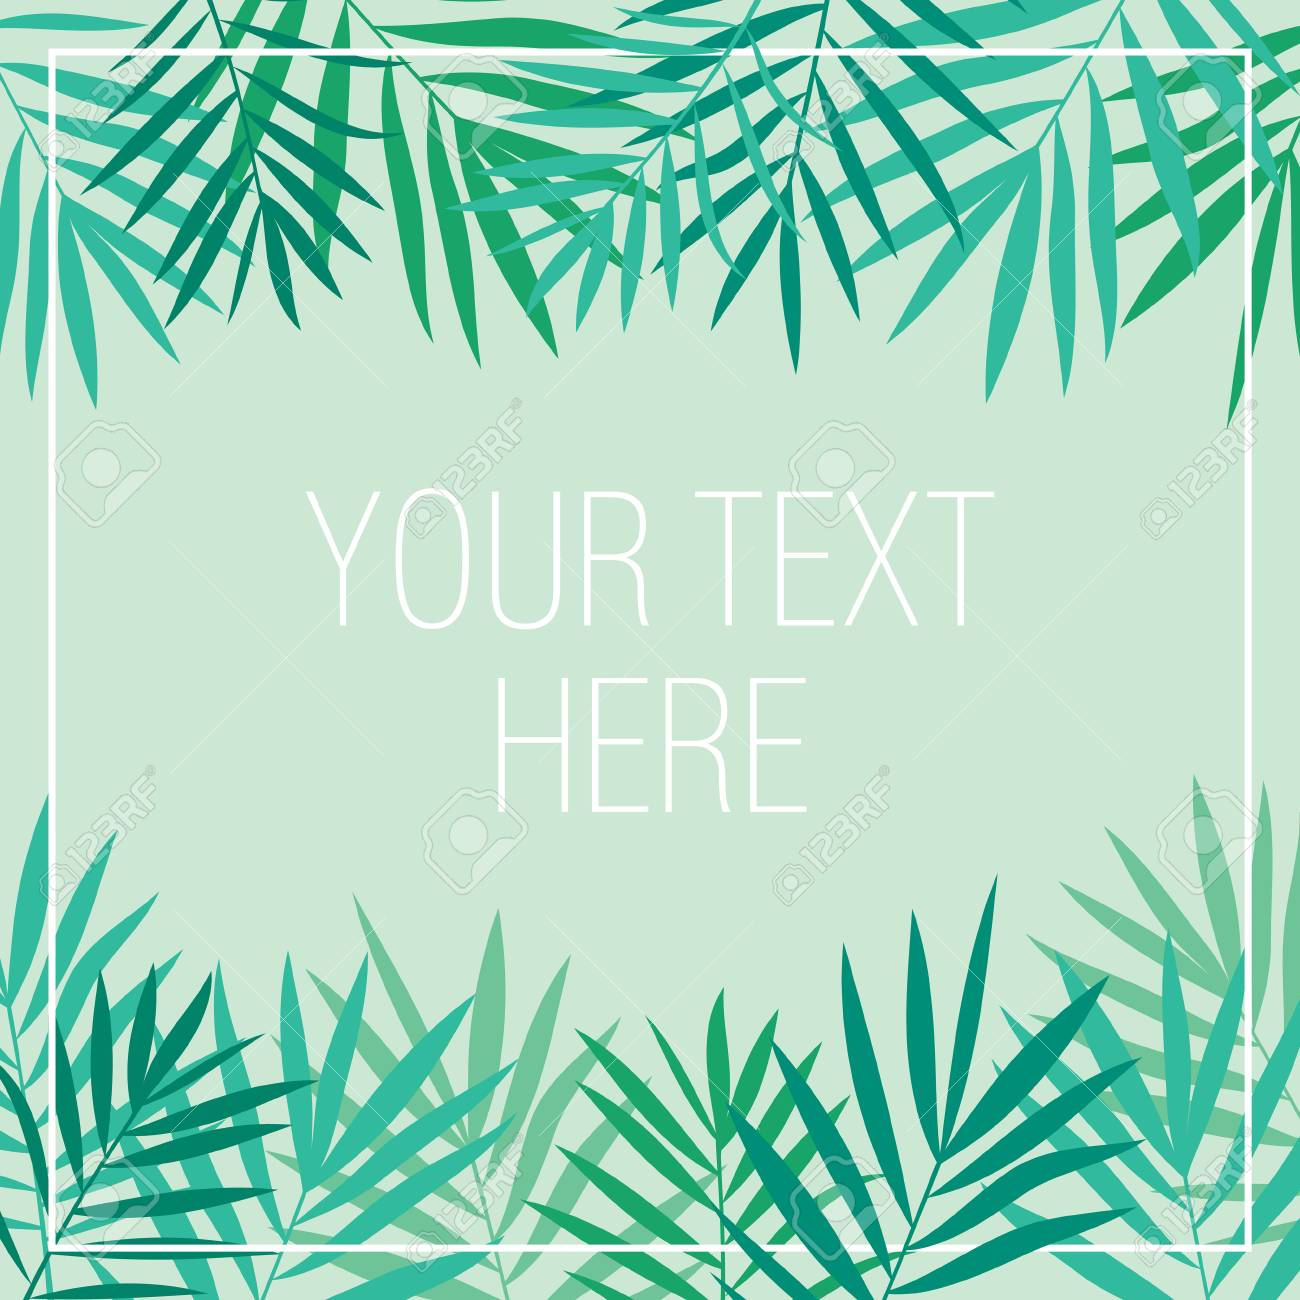 Tropical Background With Palm Leaves Banner Poster Invitation Stock Photo Picture And Royalty Free Image Image 86787184 Find & download free graphic resources for tropical leaves. tropical background with palm leaves banner poster invitation